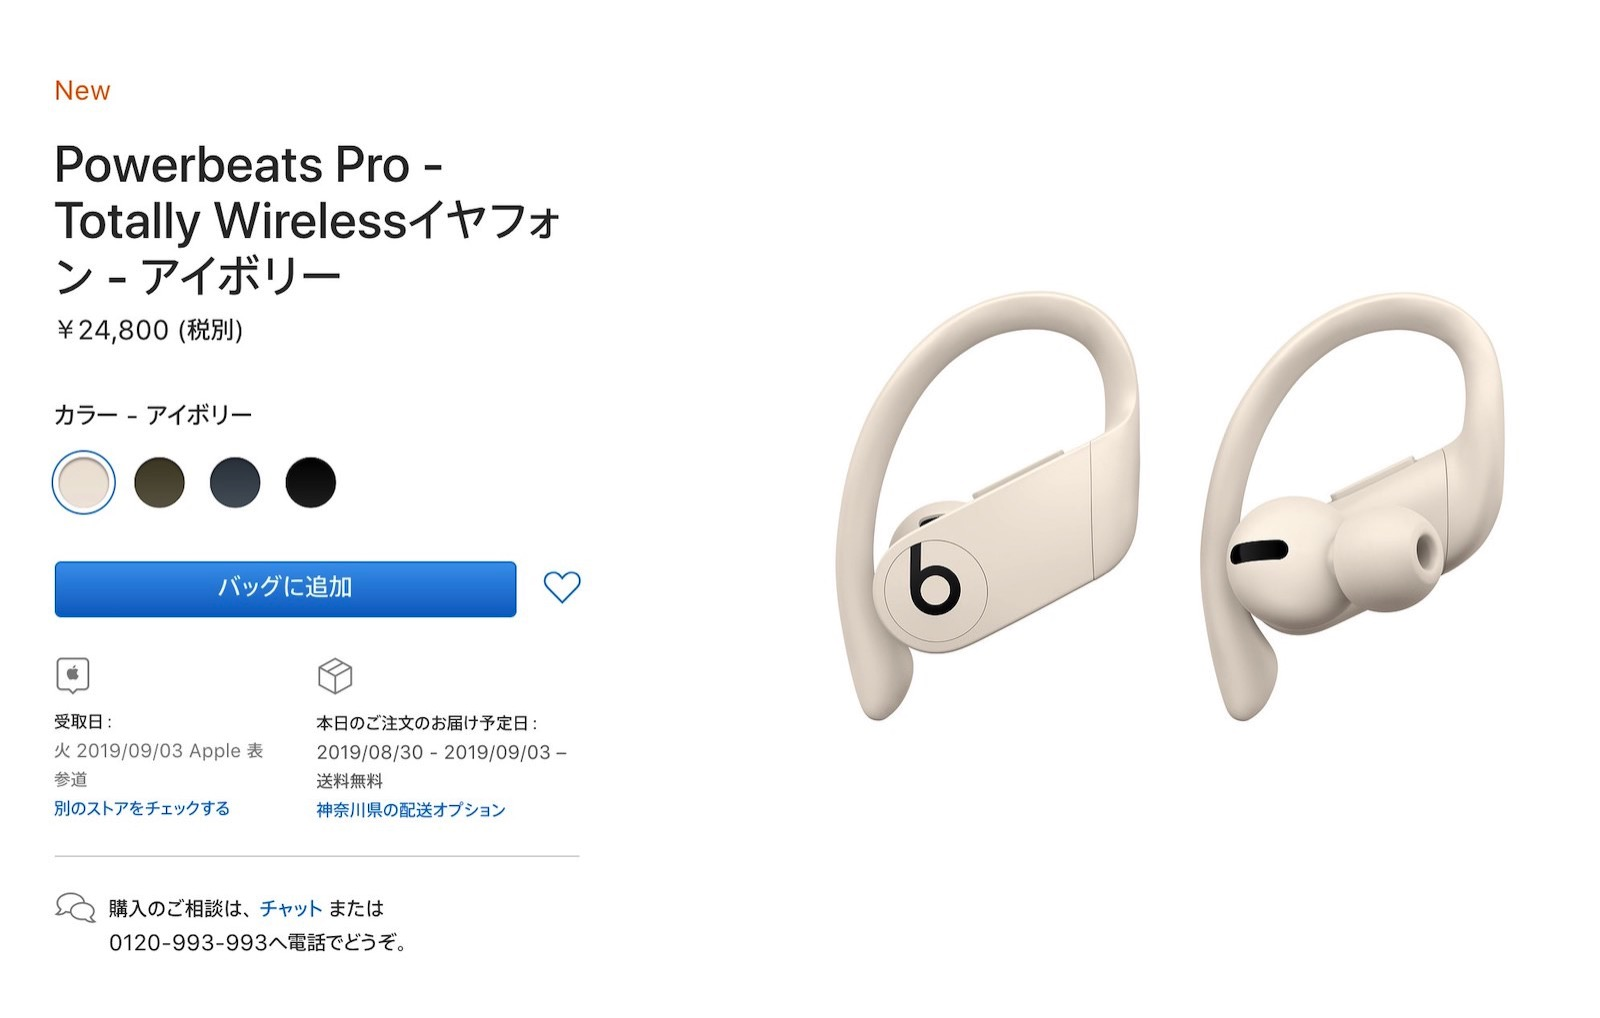 Powerbeats pro other colors